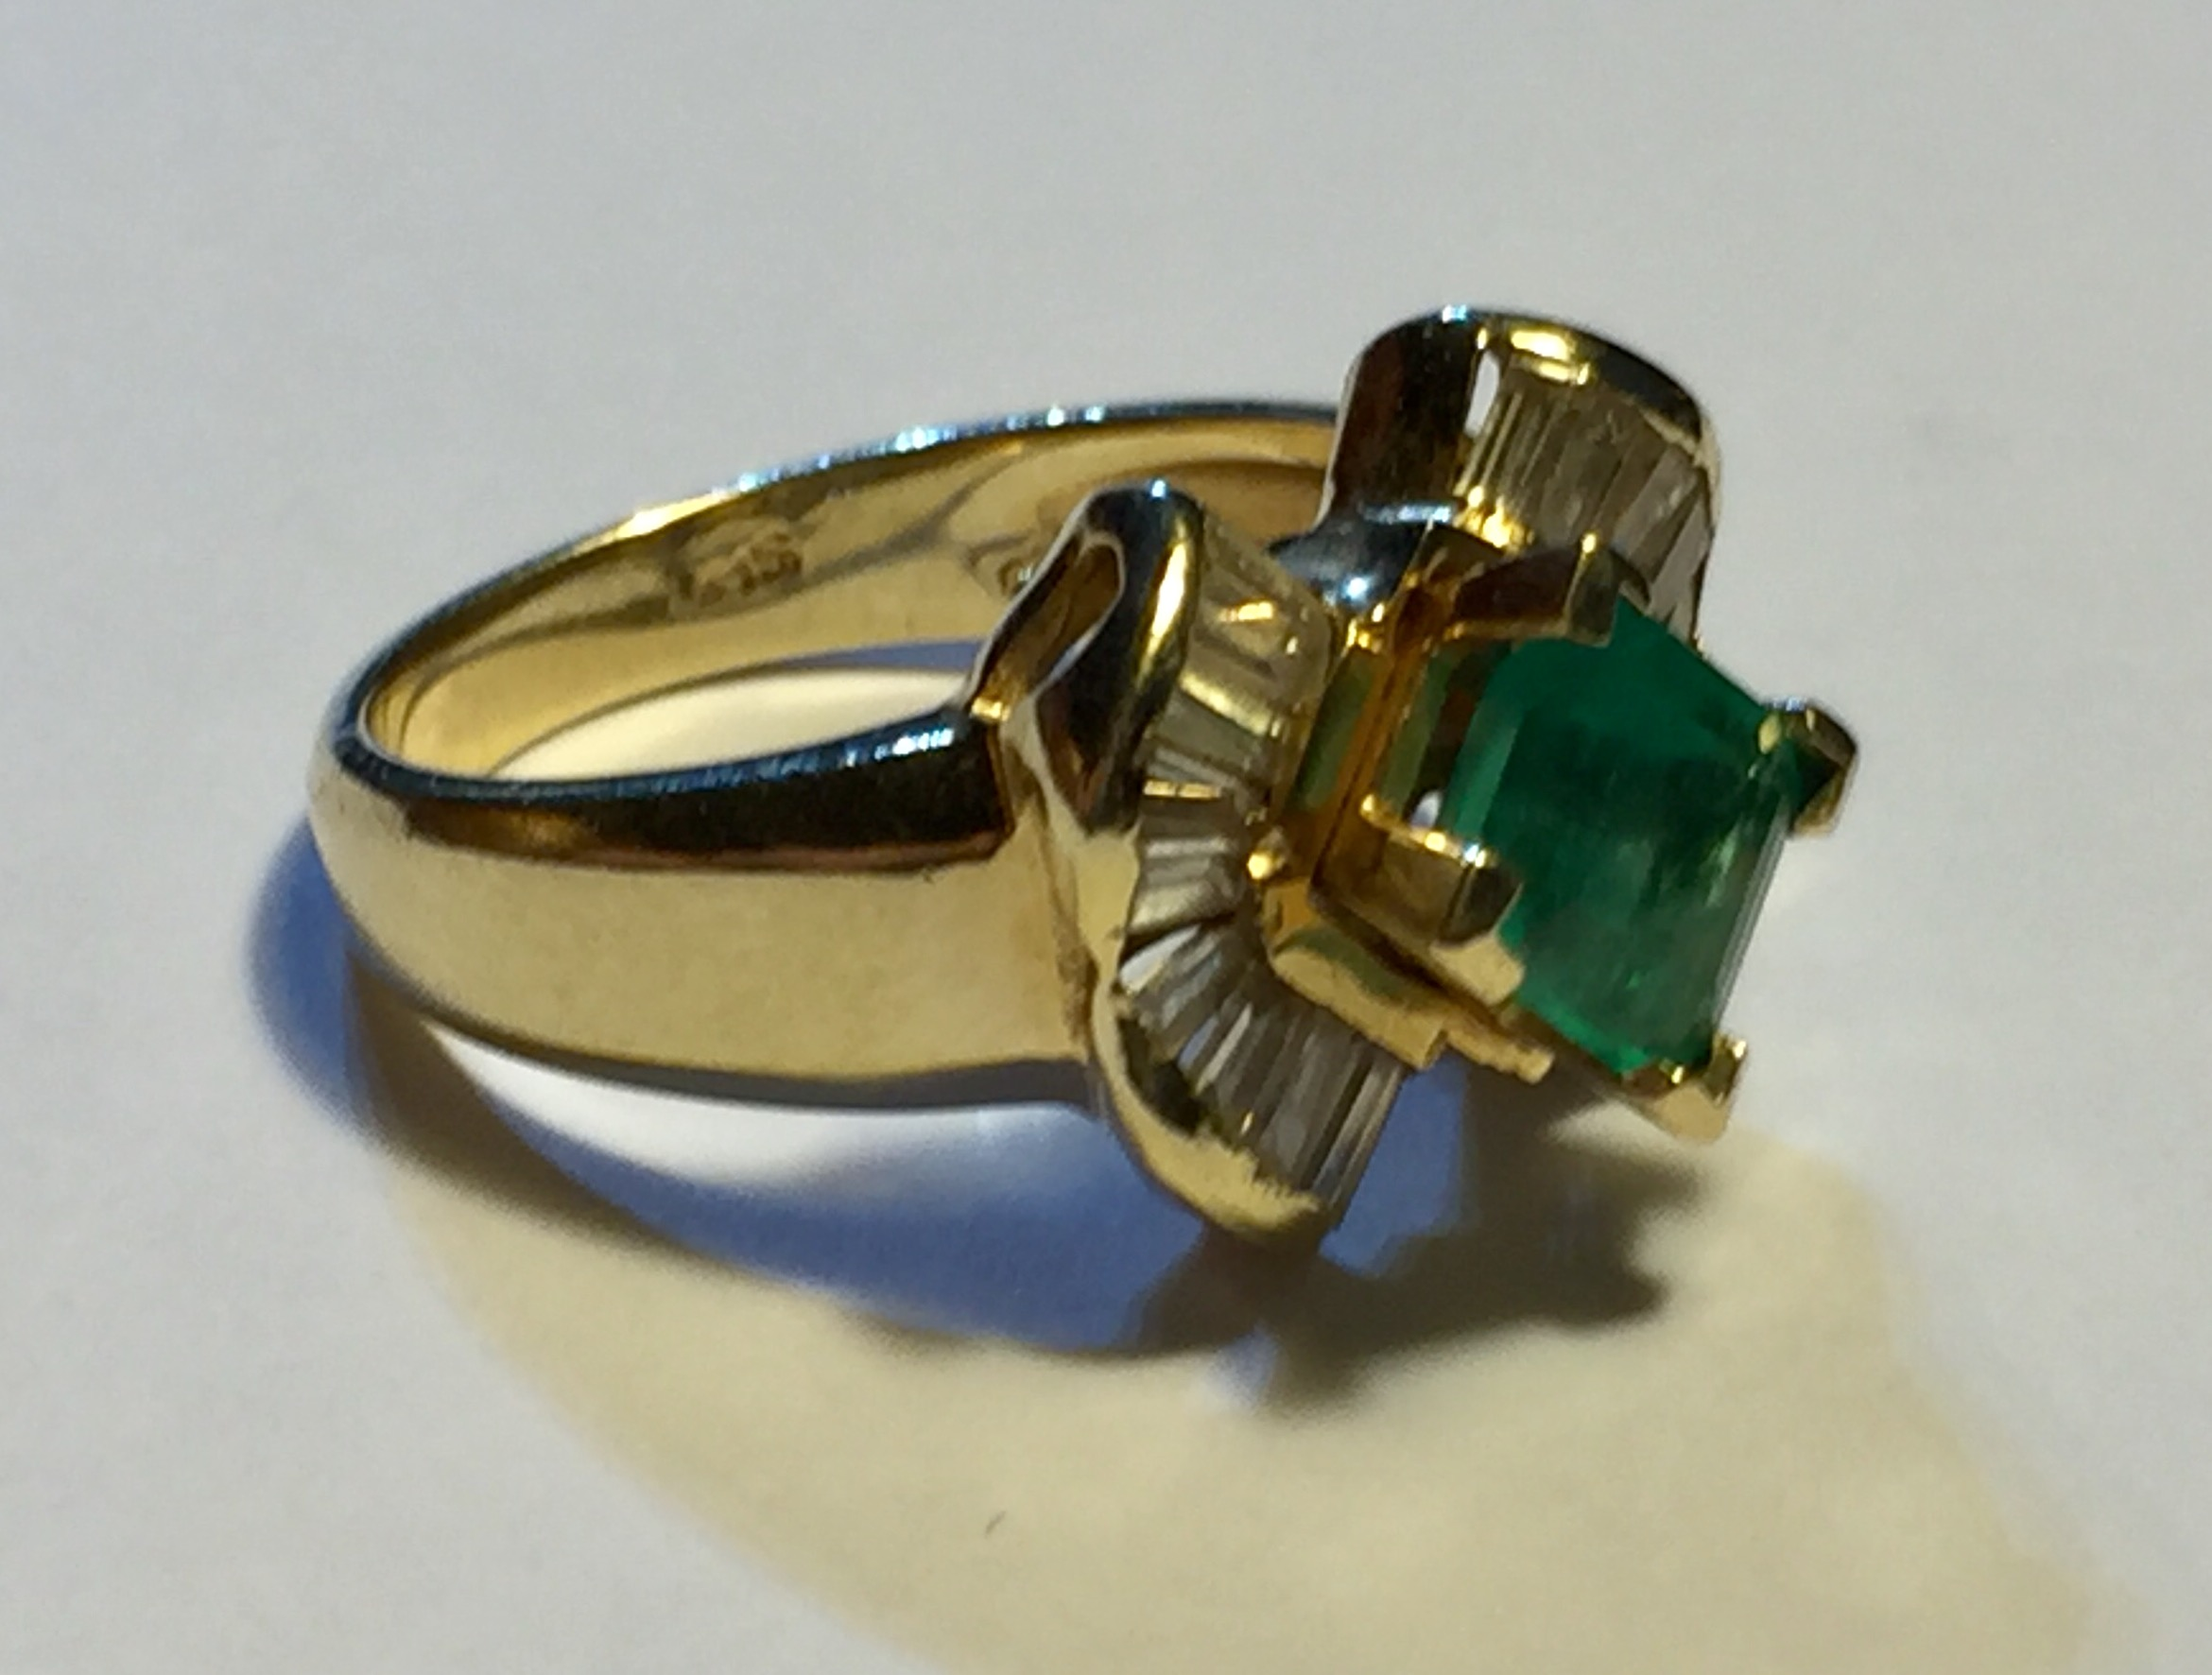 Lot 16 - A 14CT GOLD, DIAMOND AND EMERALD RING Having a single cushion cut emerald flanked by baguette cut